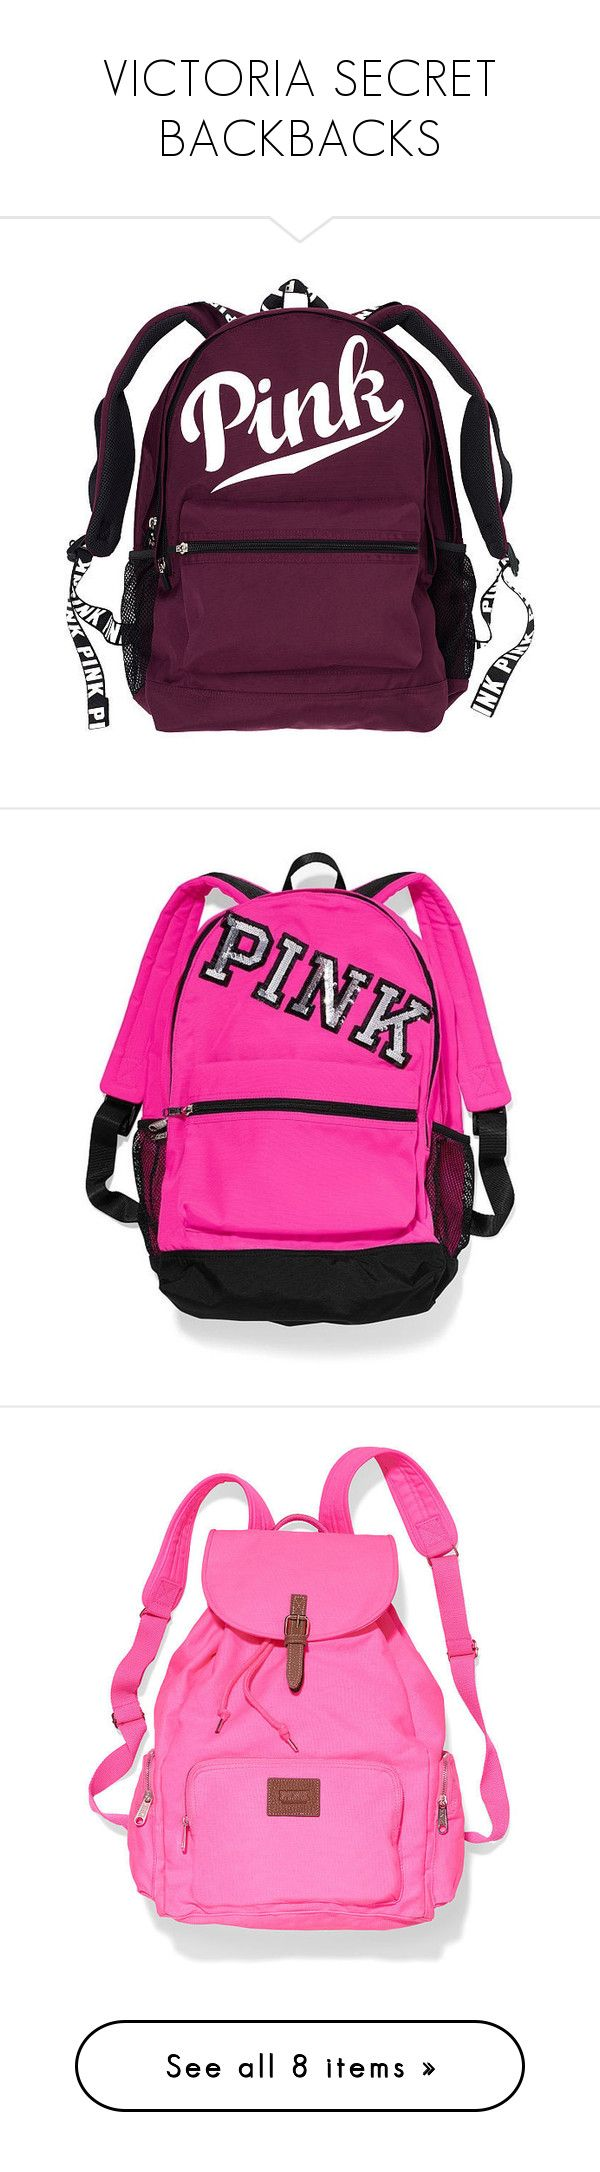 """""""VICTORIA SECRET BACKBACKS"""" by cottoncandy1223 ❤ liked on Polyvore featuring bags, backpacks, accessories, nude, backpack laptop bag, pink laptop backpack, laptop rucksack, pocket backpack, purple backpack and backpack"""